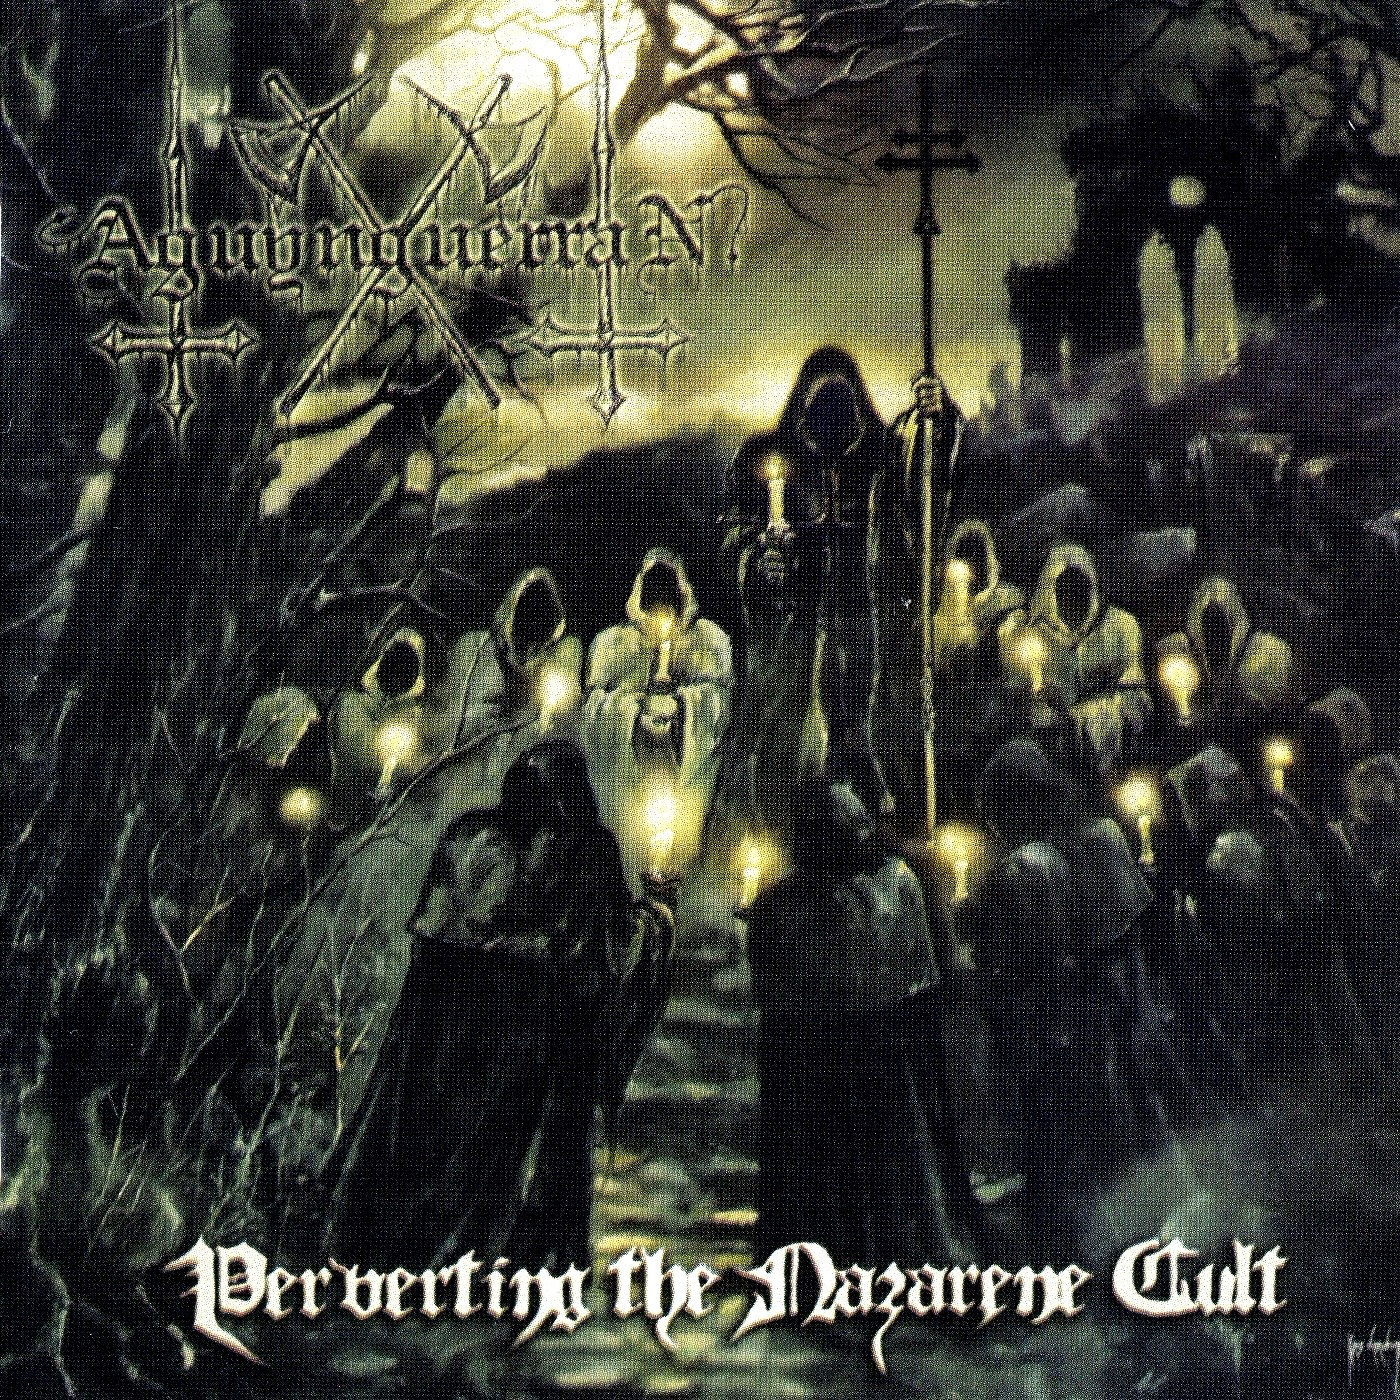 Review for Aguynguerran - Perverting the Nazarene Cult